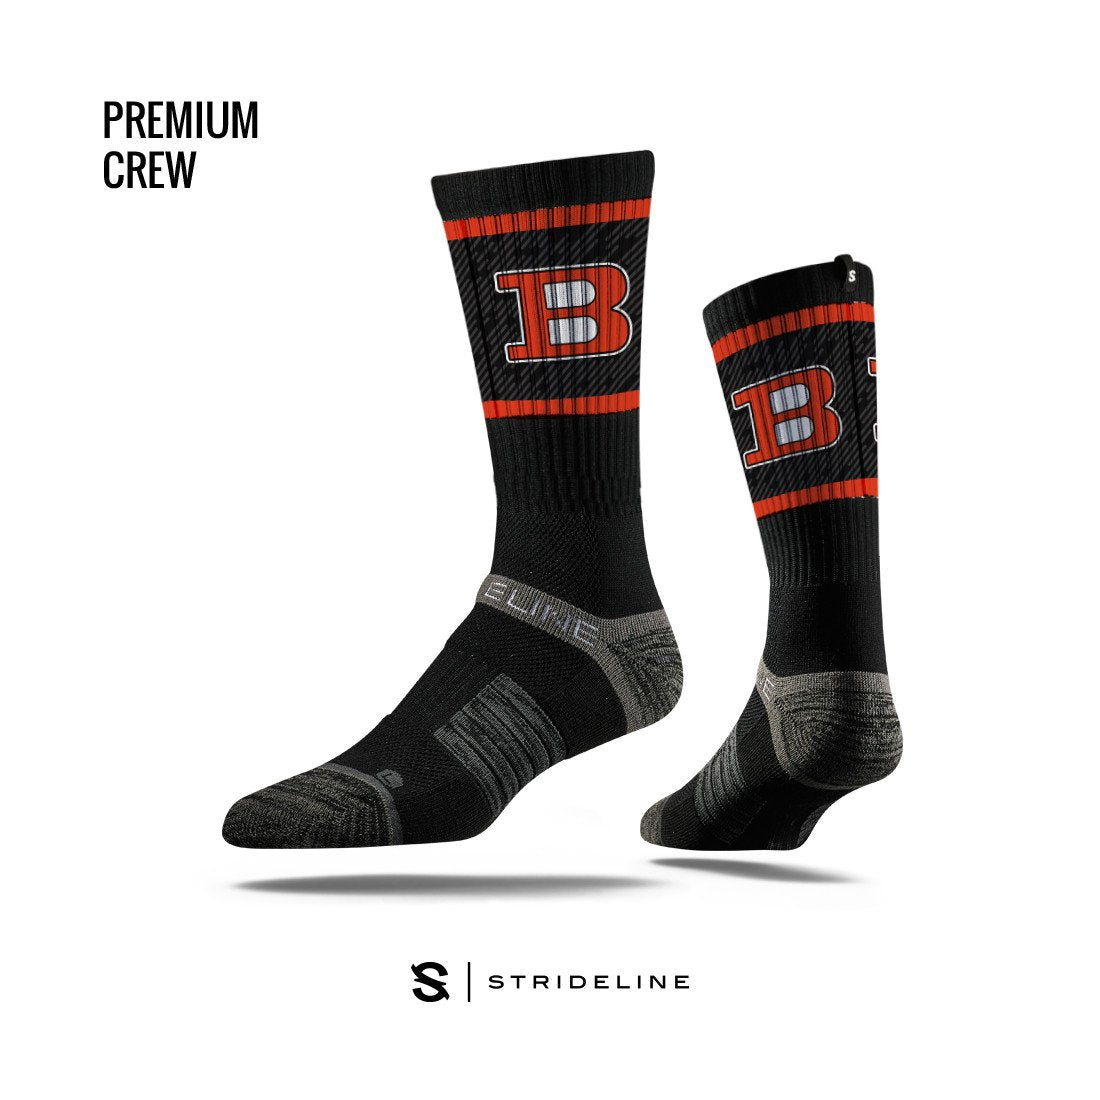 Ballard High School Apparel | Socks | Premium